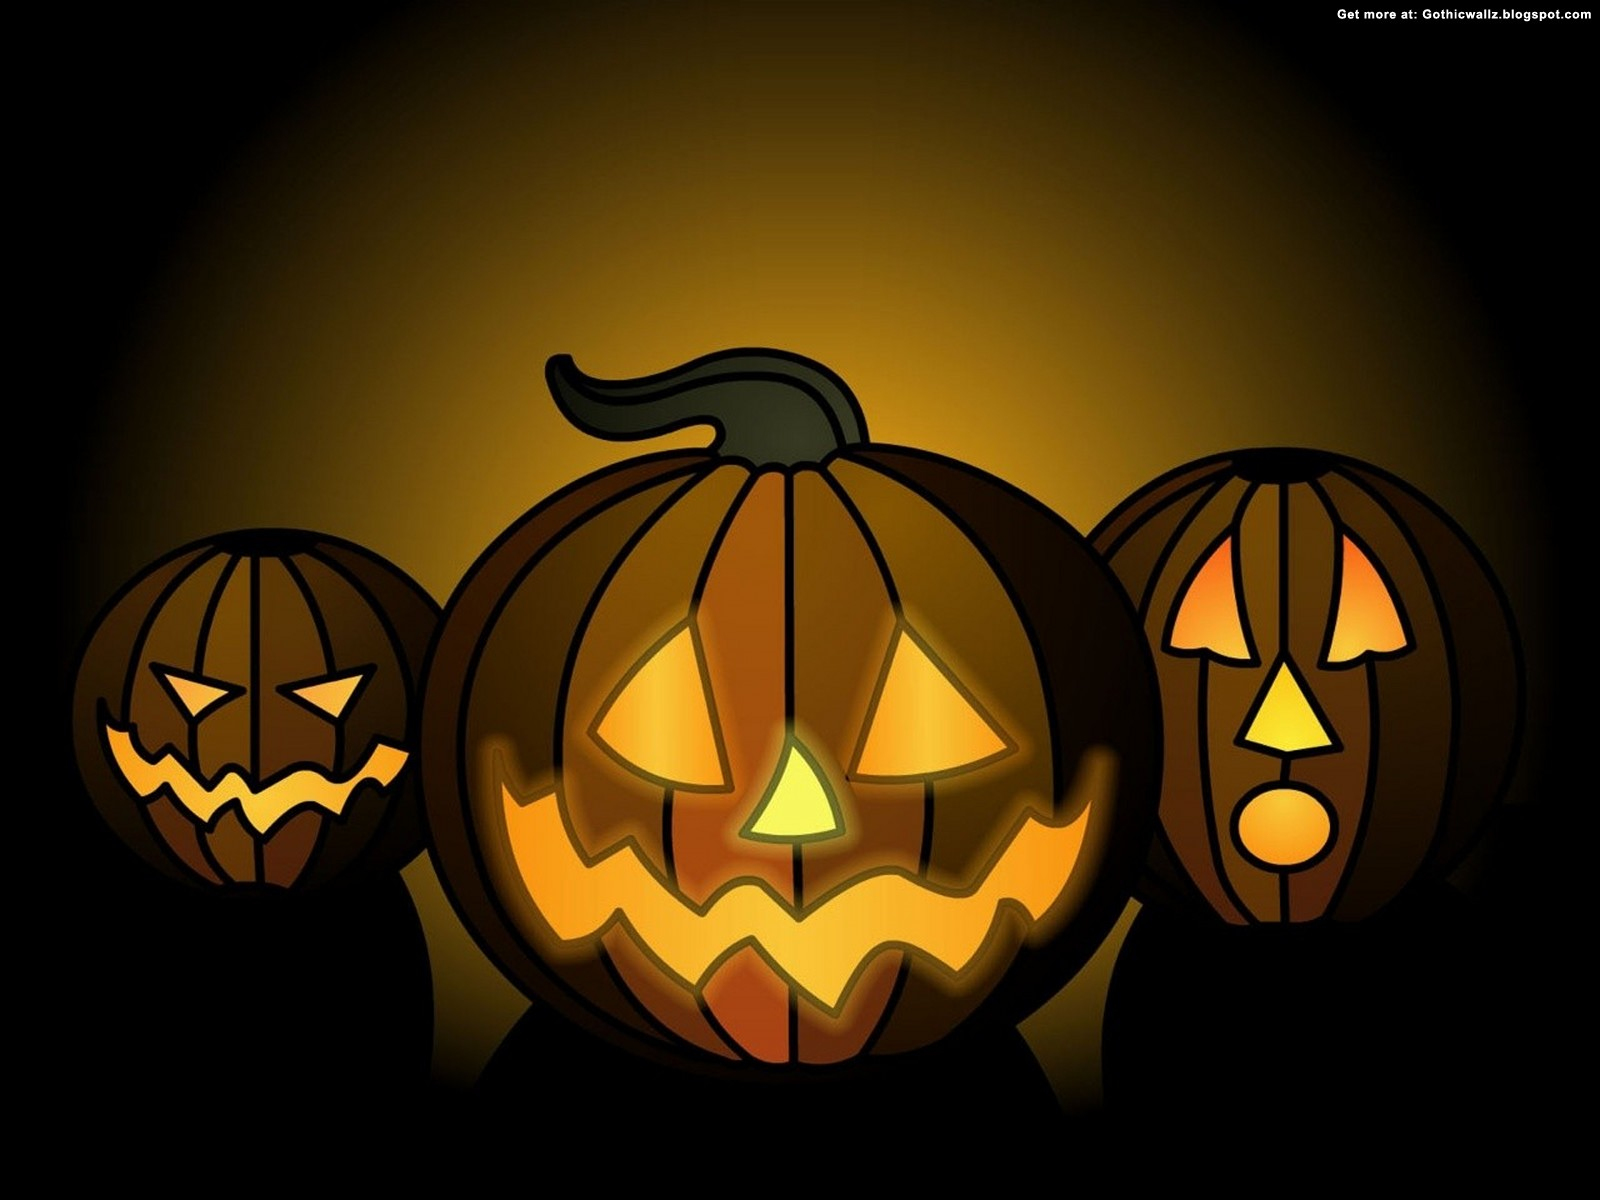 halloween pumpkins faces | Gothic Wallpaper Download